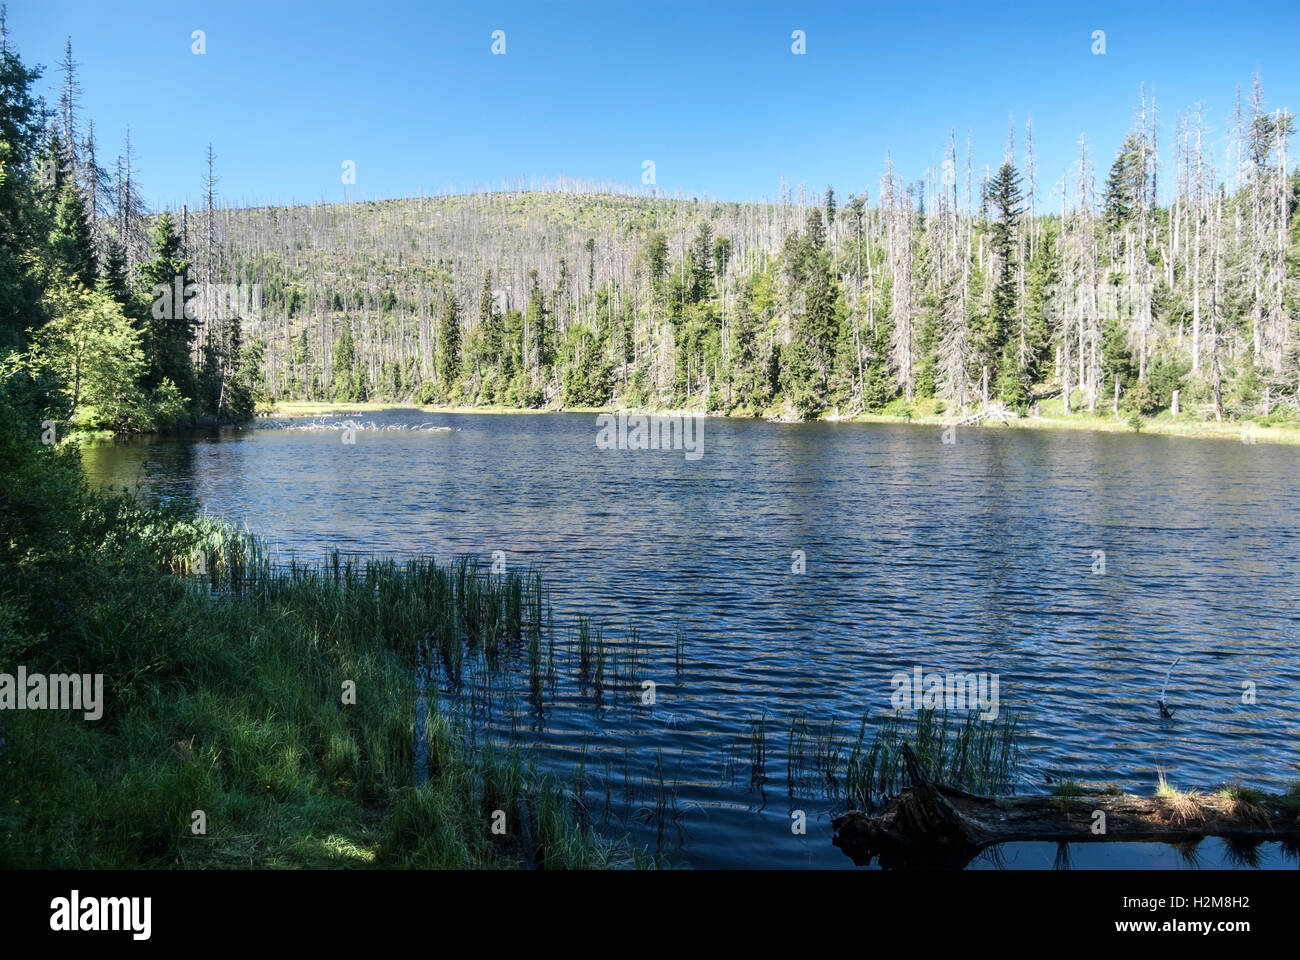 Laka mountain lake with clear sky and forest devastated by bark beetle infestation in Sumava mountains - Stock Image